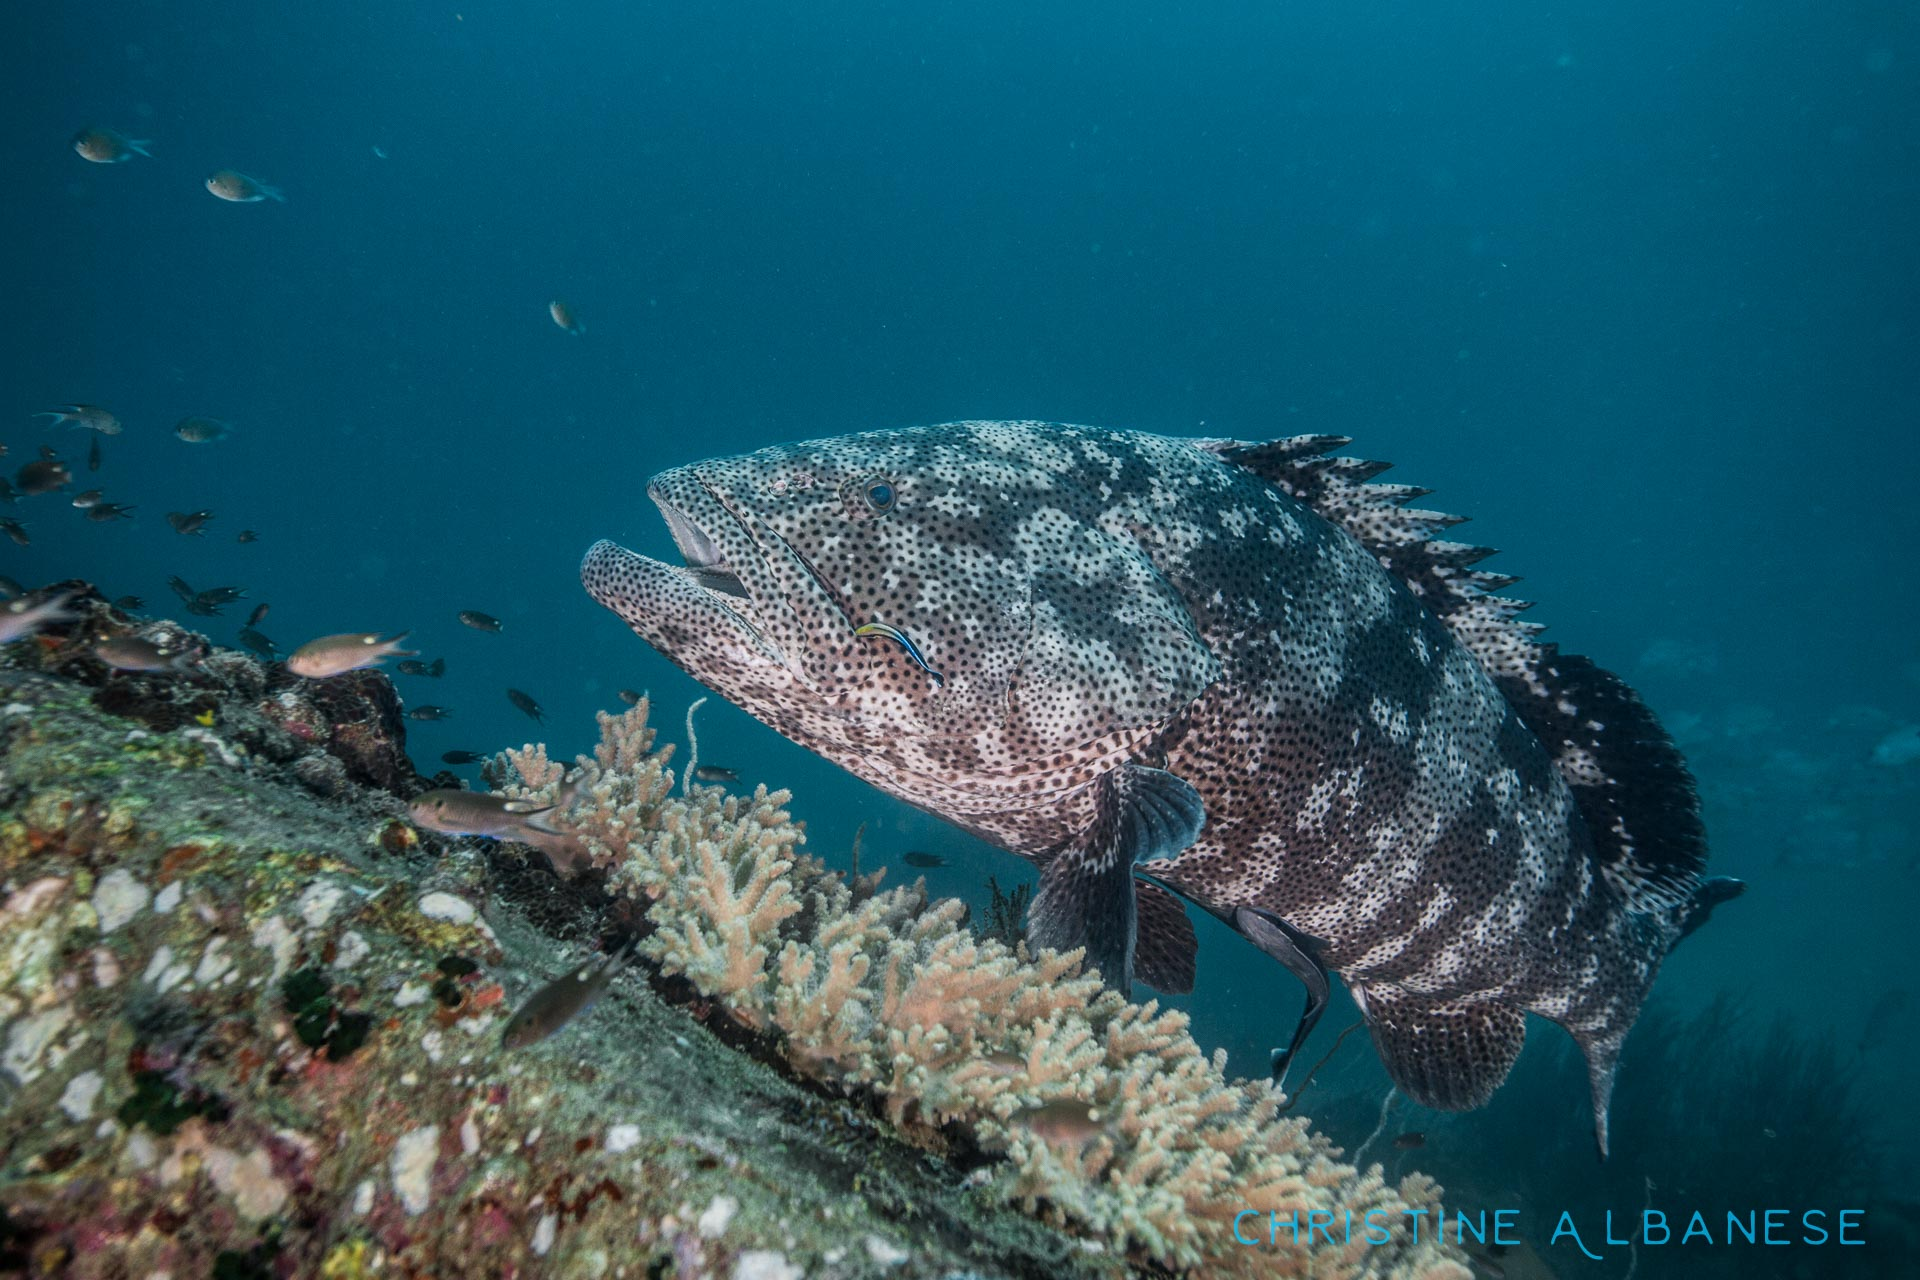 Malabar groupers (Epinephelus Malabaricus) around Koh Tao are actually quite approachable unlike the other species we have around here which tend to be a little skittish. They are the biggest species we have in this area, some reaching almost a metre in length!